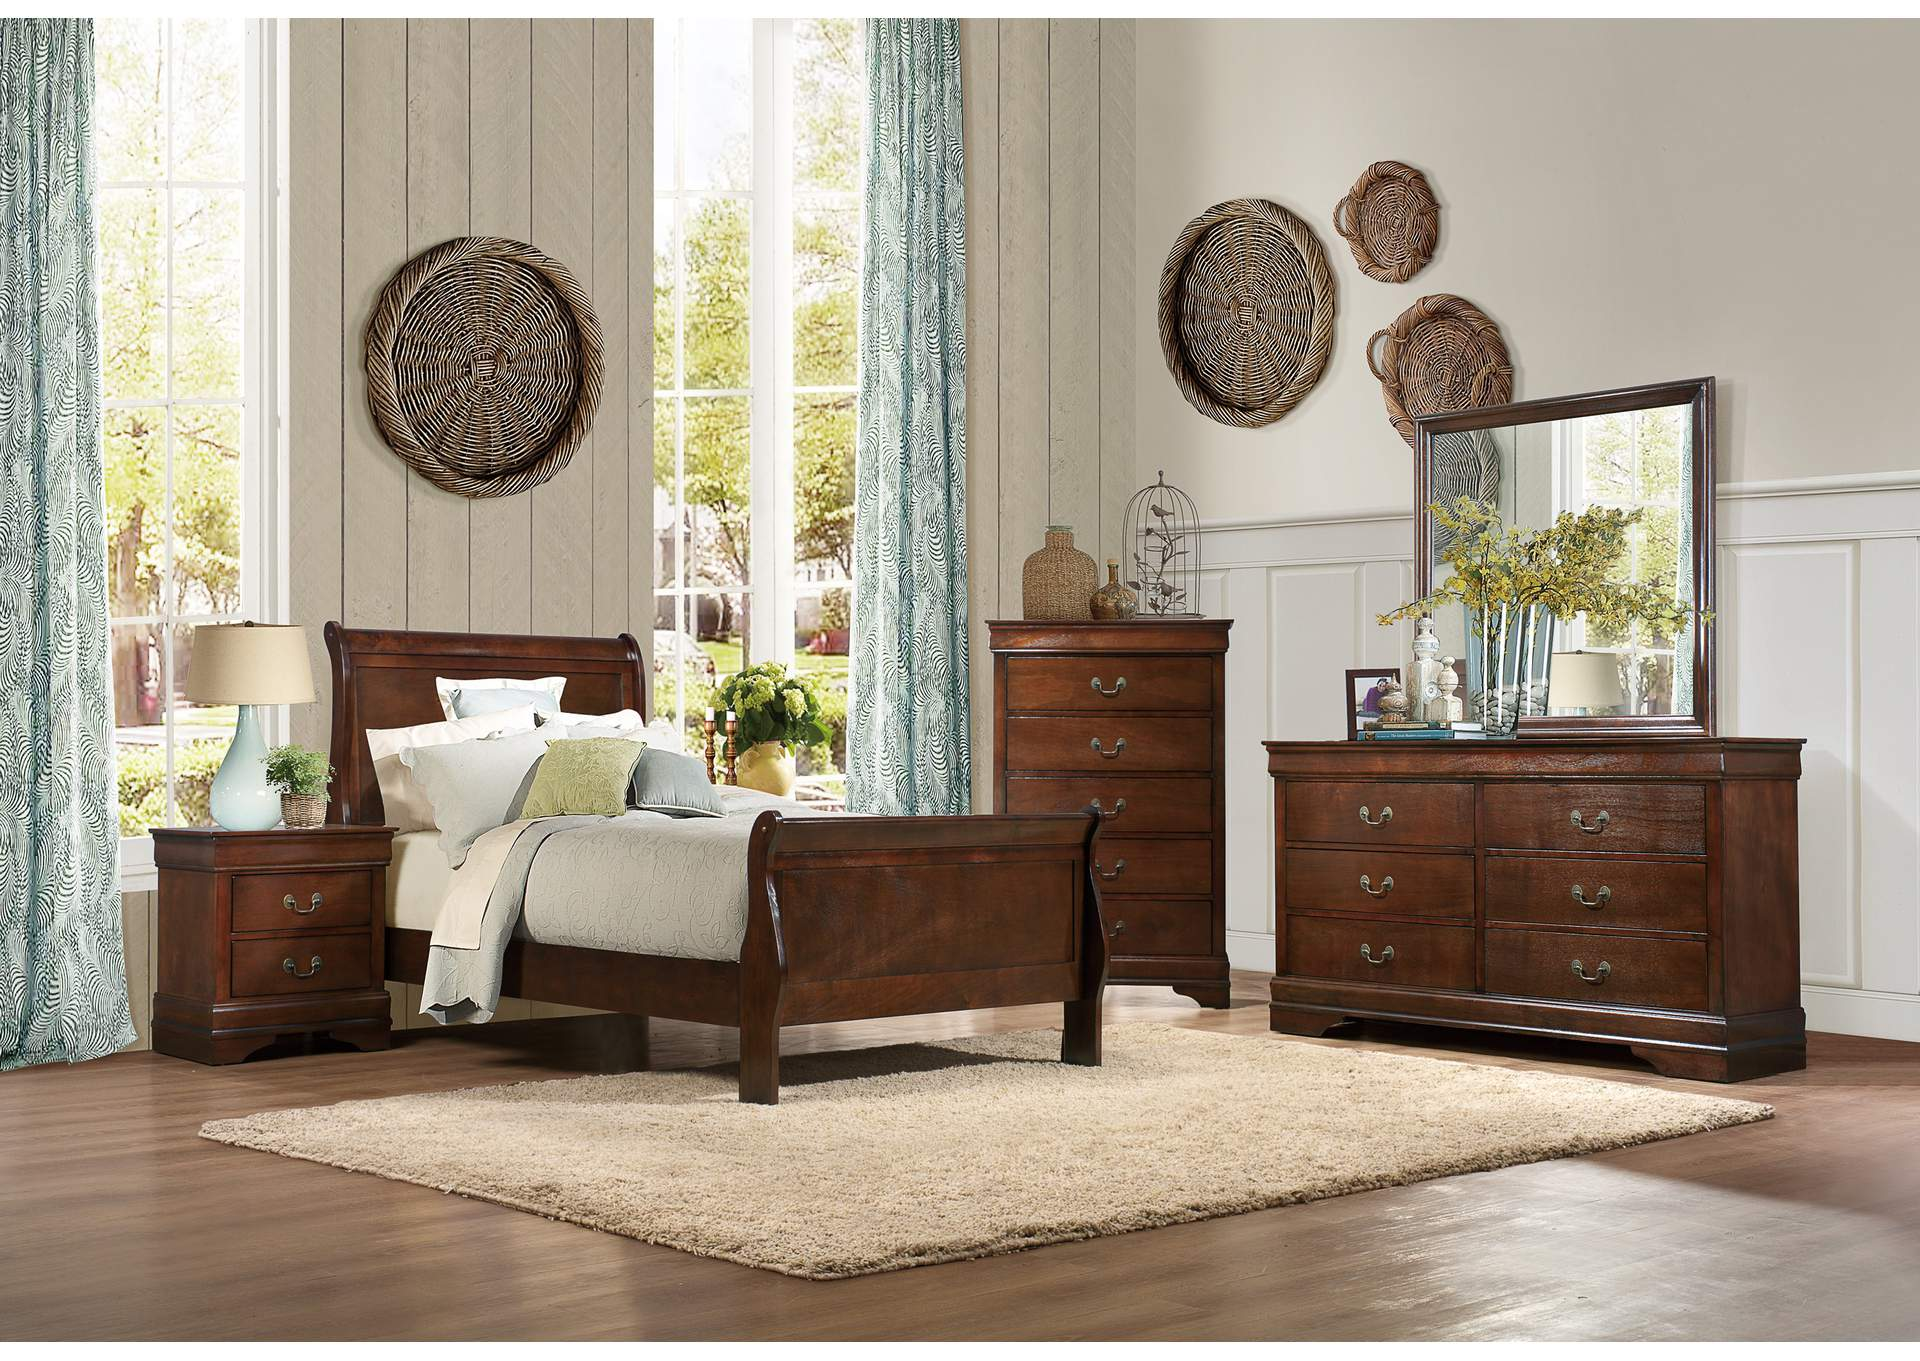 Mayville Burnish Brown Cherry Twin Sleigh Bed w/ Dresser, Mirror and Nightstand,Homelegance